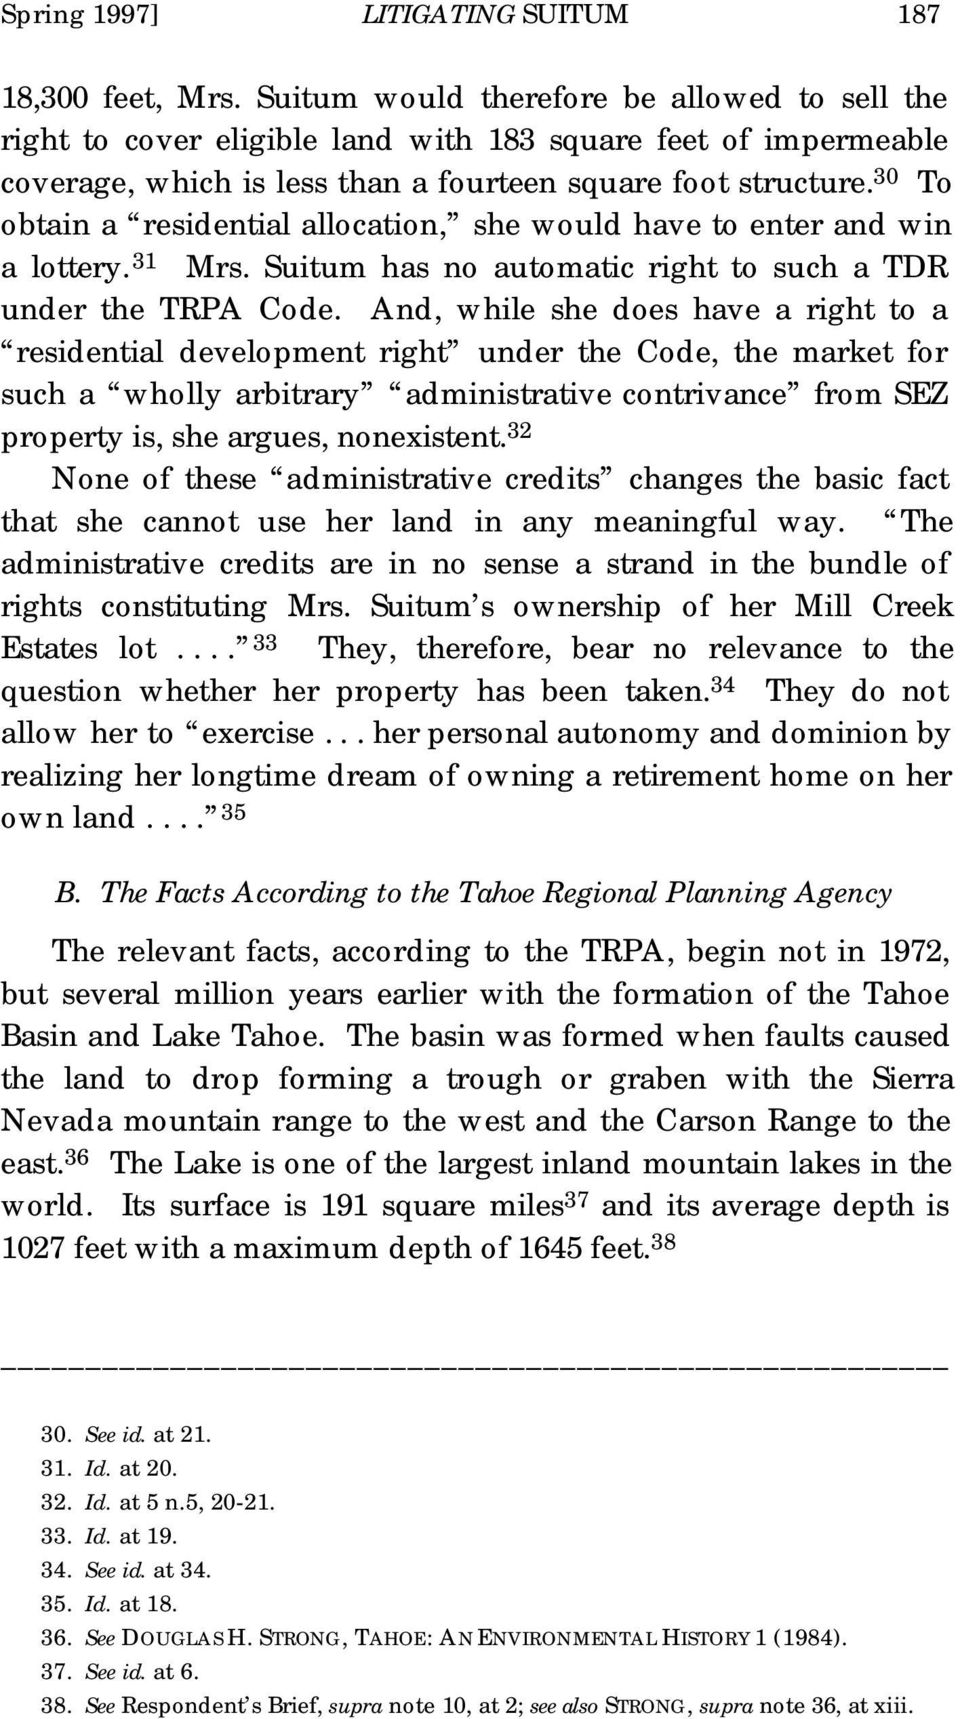 30 To obtain a residential allocation, she would have to enter and win a lottery. 31 Mrs. Suitum has no automatic right to such a TDR under the TRPA Code.